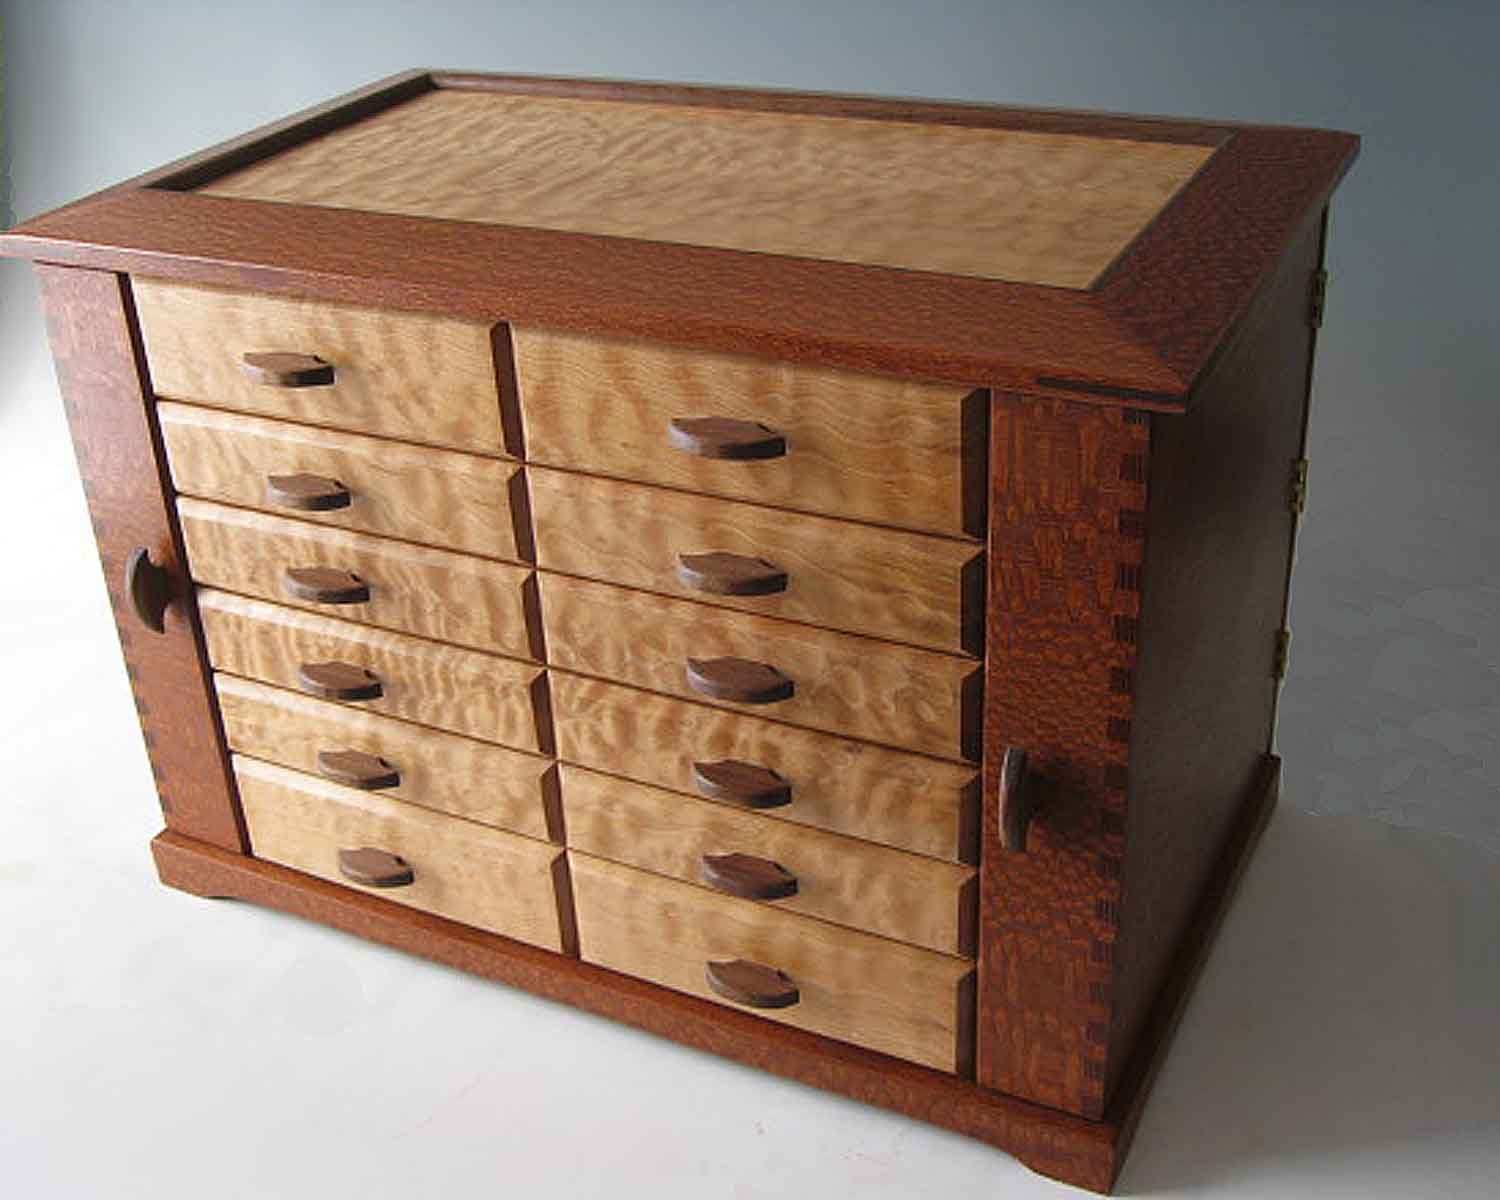 Custom Jewelry Boxes The Perfect Unique Gift Idea Wooden Boxes